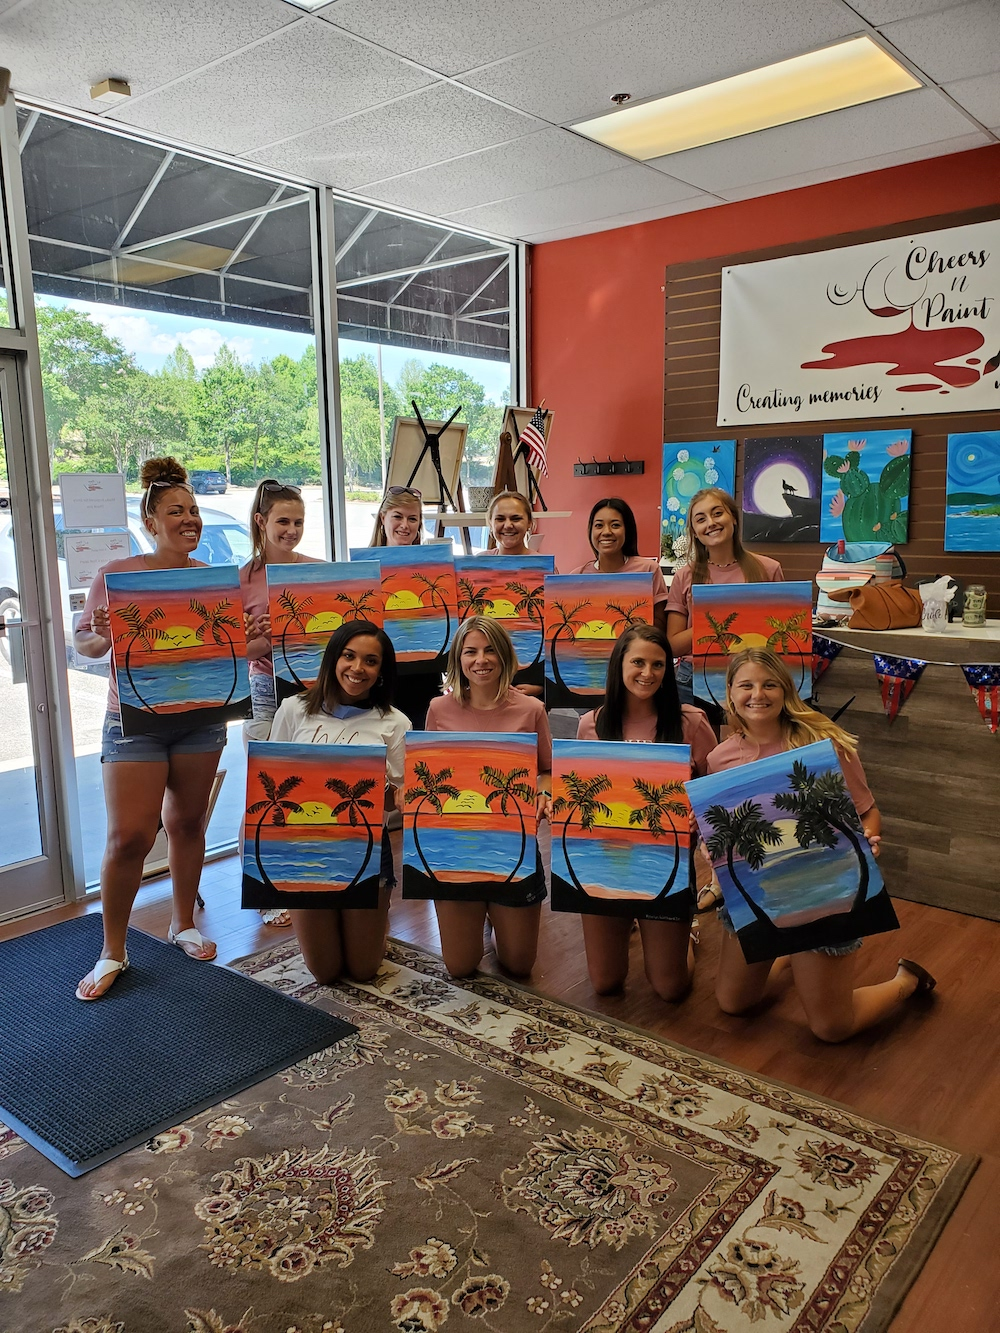 Private Paint And Sip Bachelorette Parties For The Bride To Be Hosted By Cheers N Paint The Best Paint And Sip Studio In Cary Nc